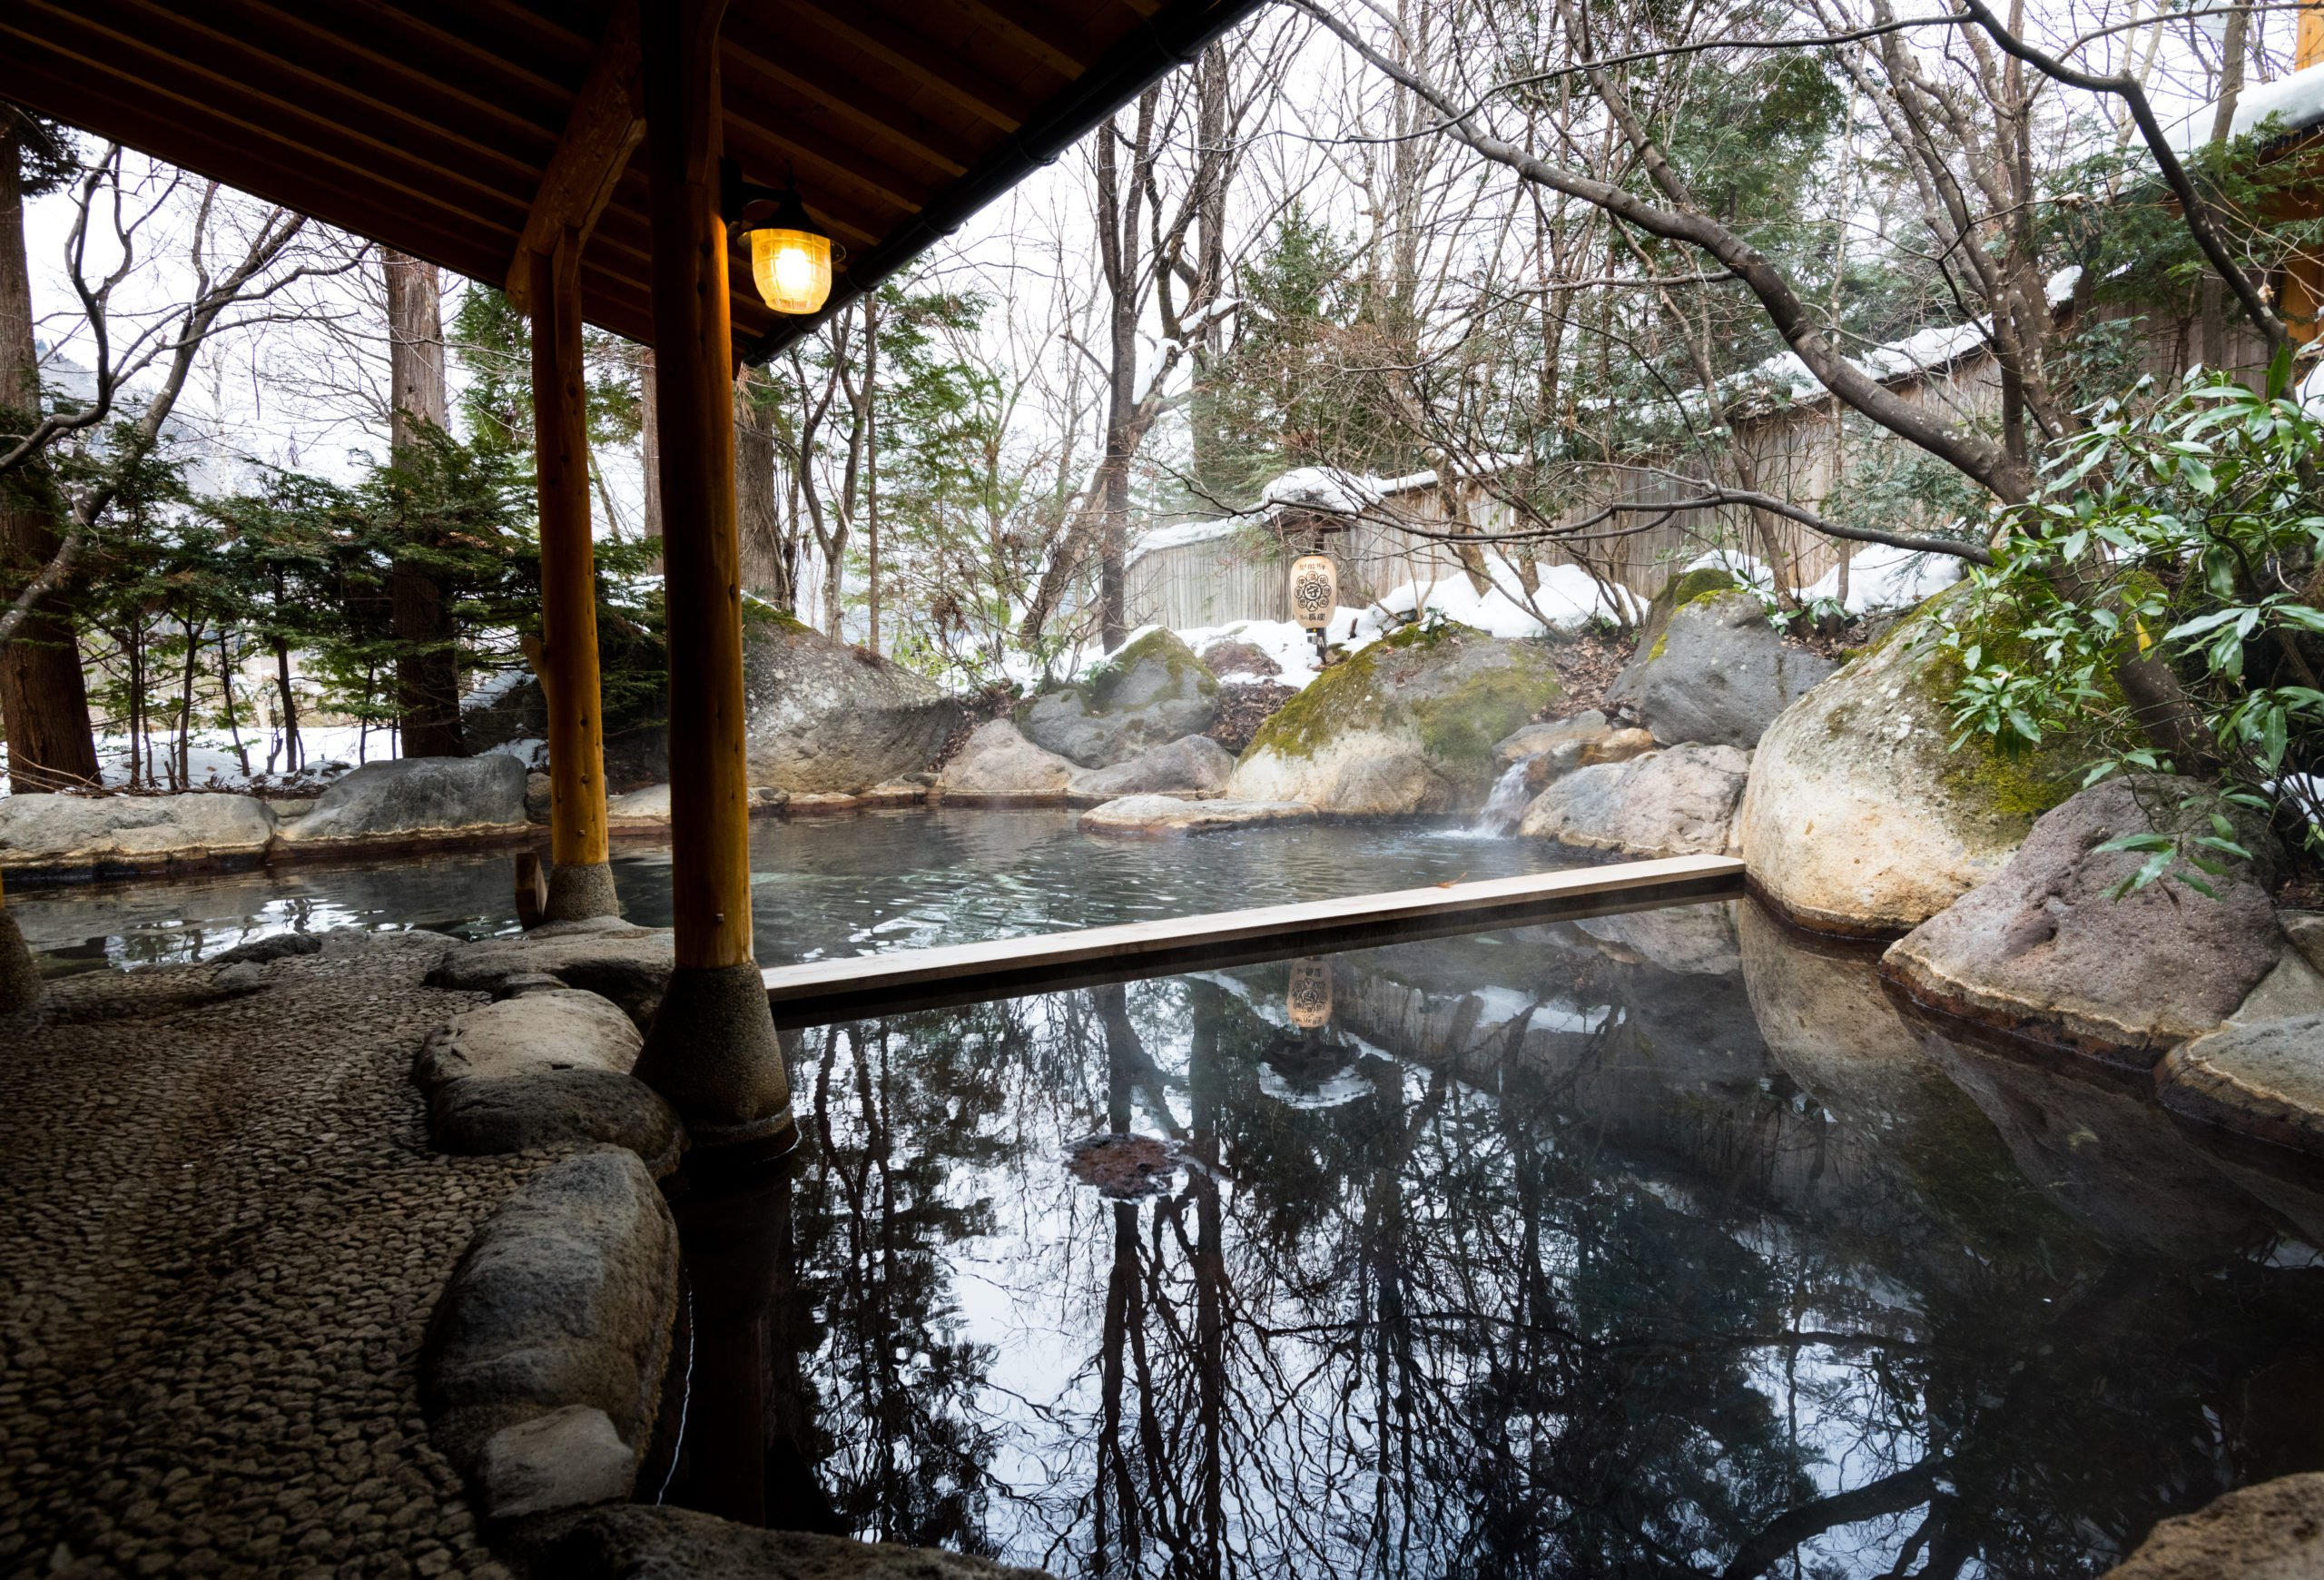 Relax At The Onsen Hot Springs During The Hirayu Waterfall Hike From Hirayu Onsen